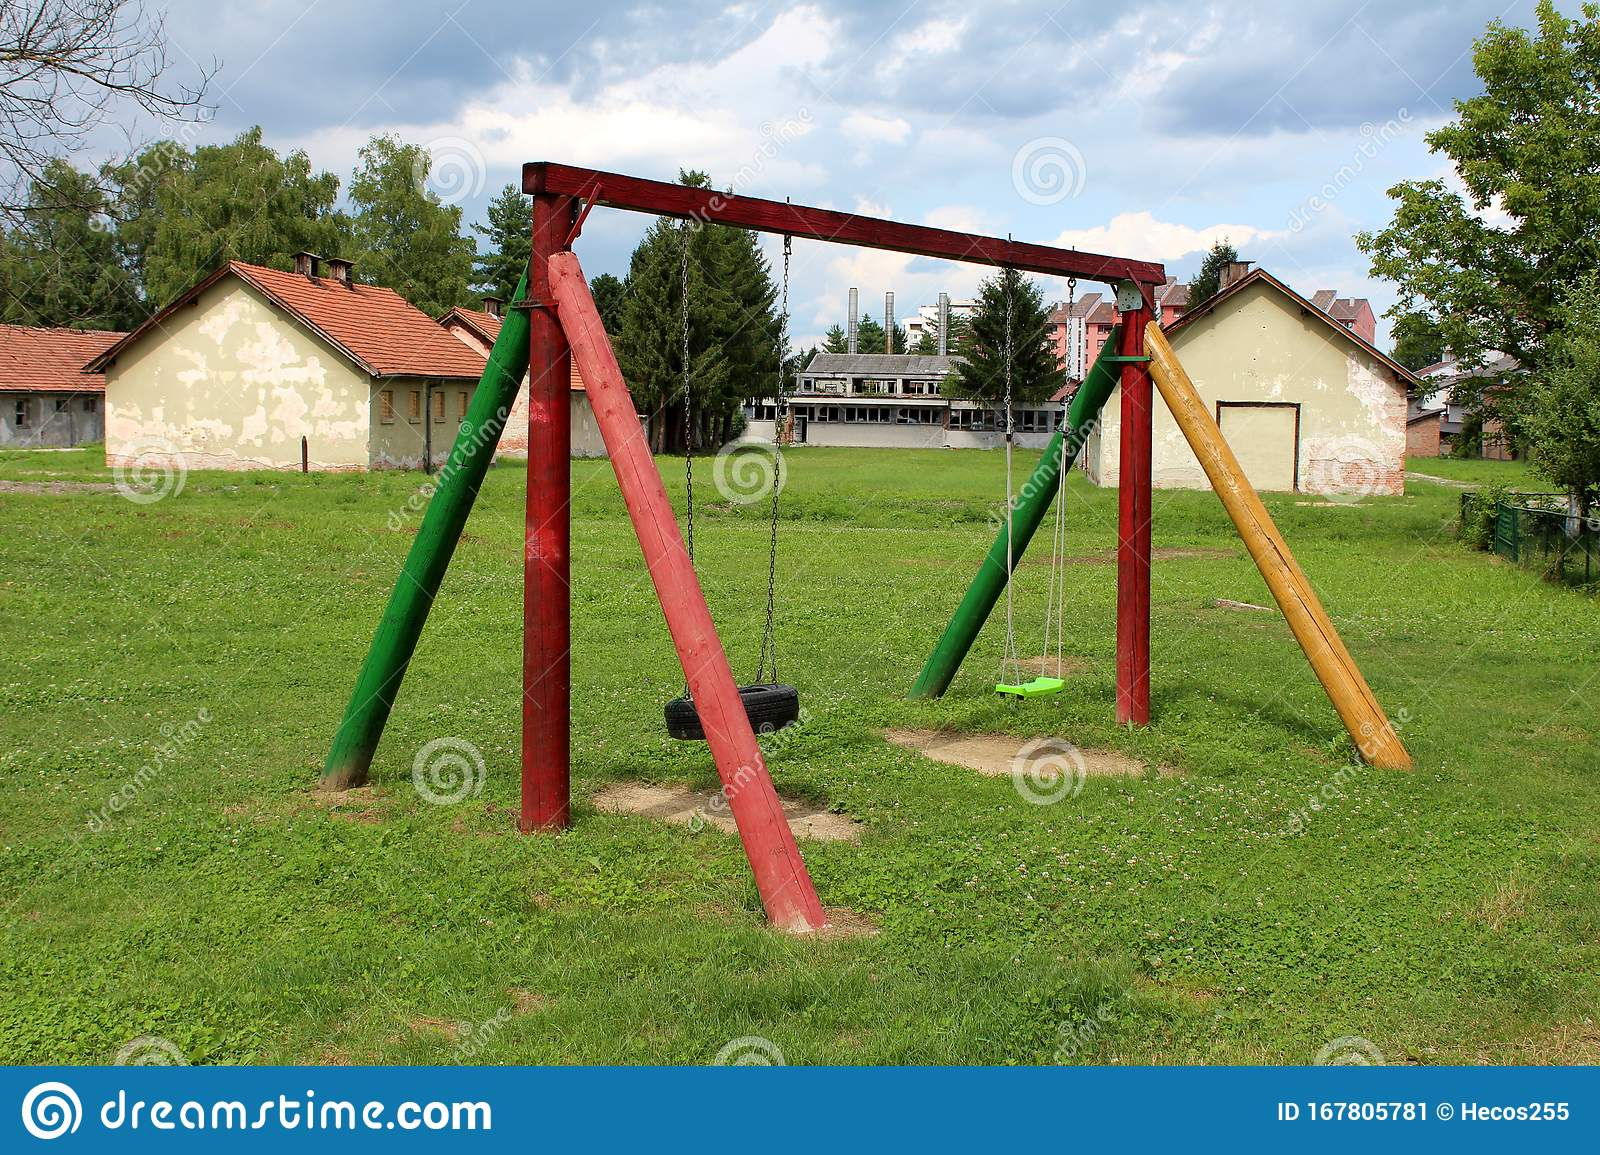 Vintage Retro Colorful Wooden Outdoor Public Playground Equipment In Shape Of Swing In Front Of Abandoned Military Complex Stock Image Image Of Seats Military 167805781